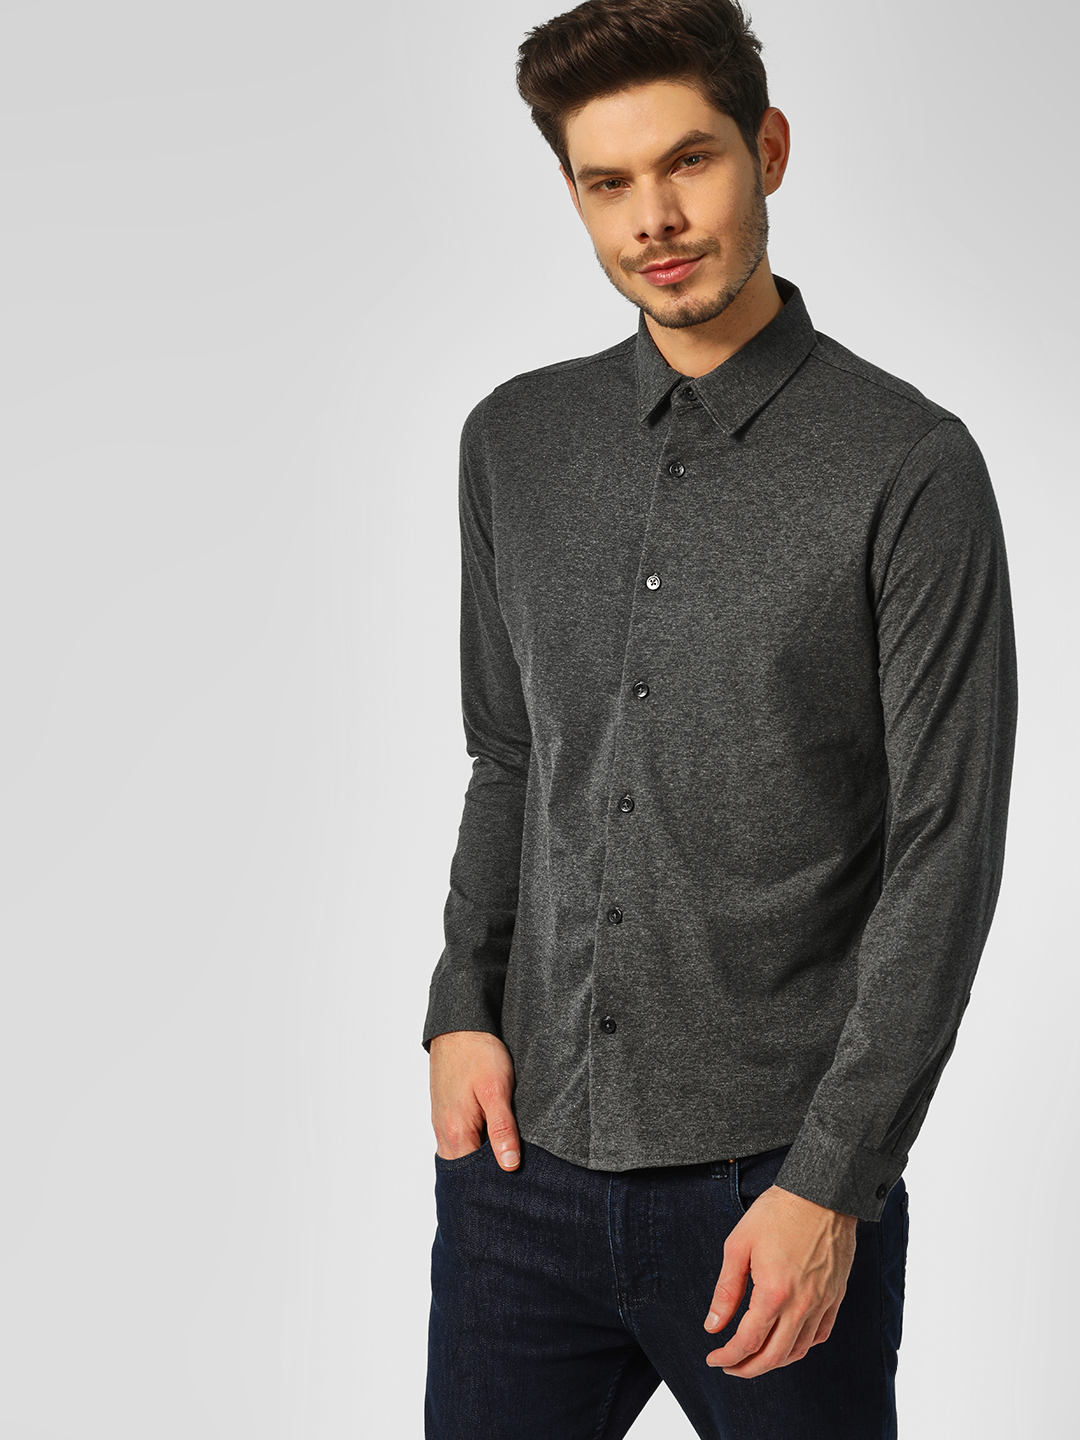 Indigo Nation Grey Melange Slim Fit Knitted Shirt 1